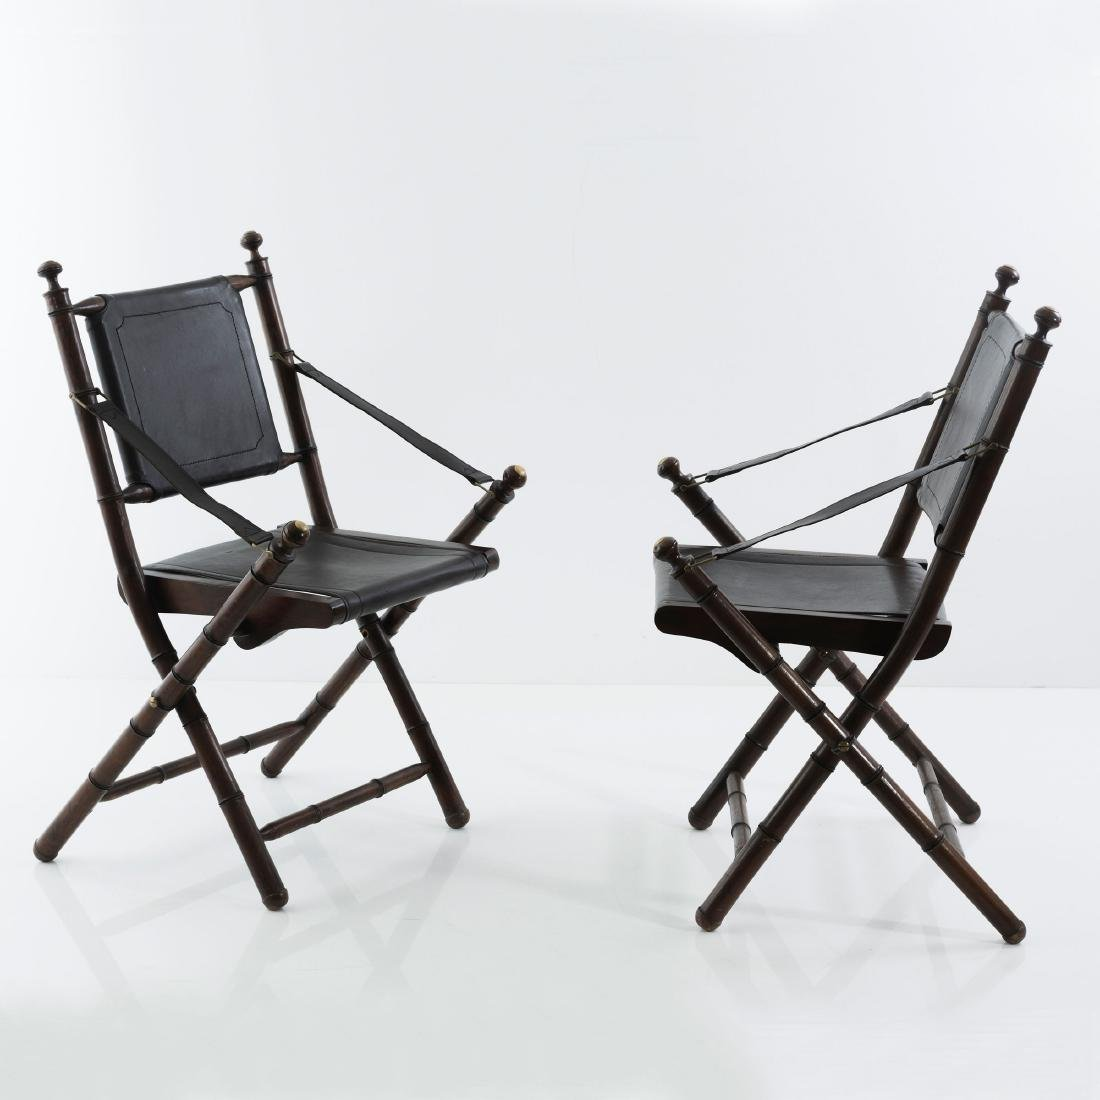 Two folding chairs, 1930/40s - 5